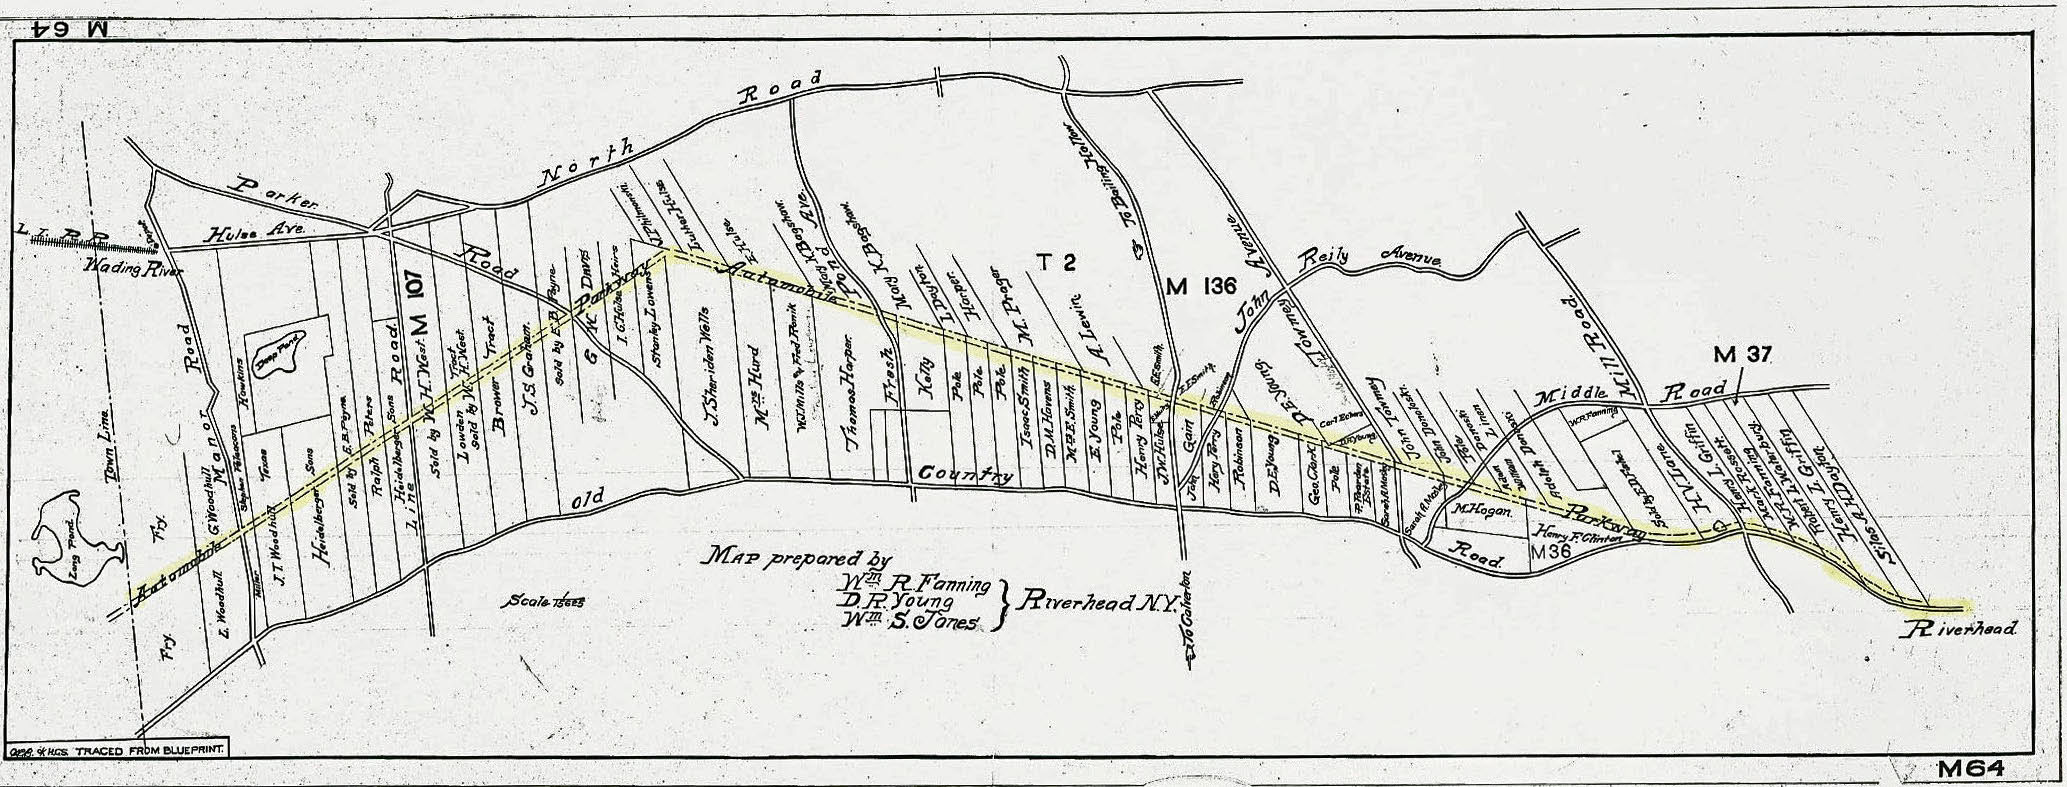 a survey of the planned automobile parkway just west of riverhead